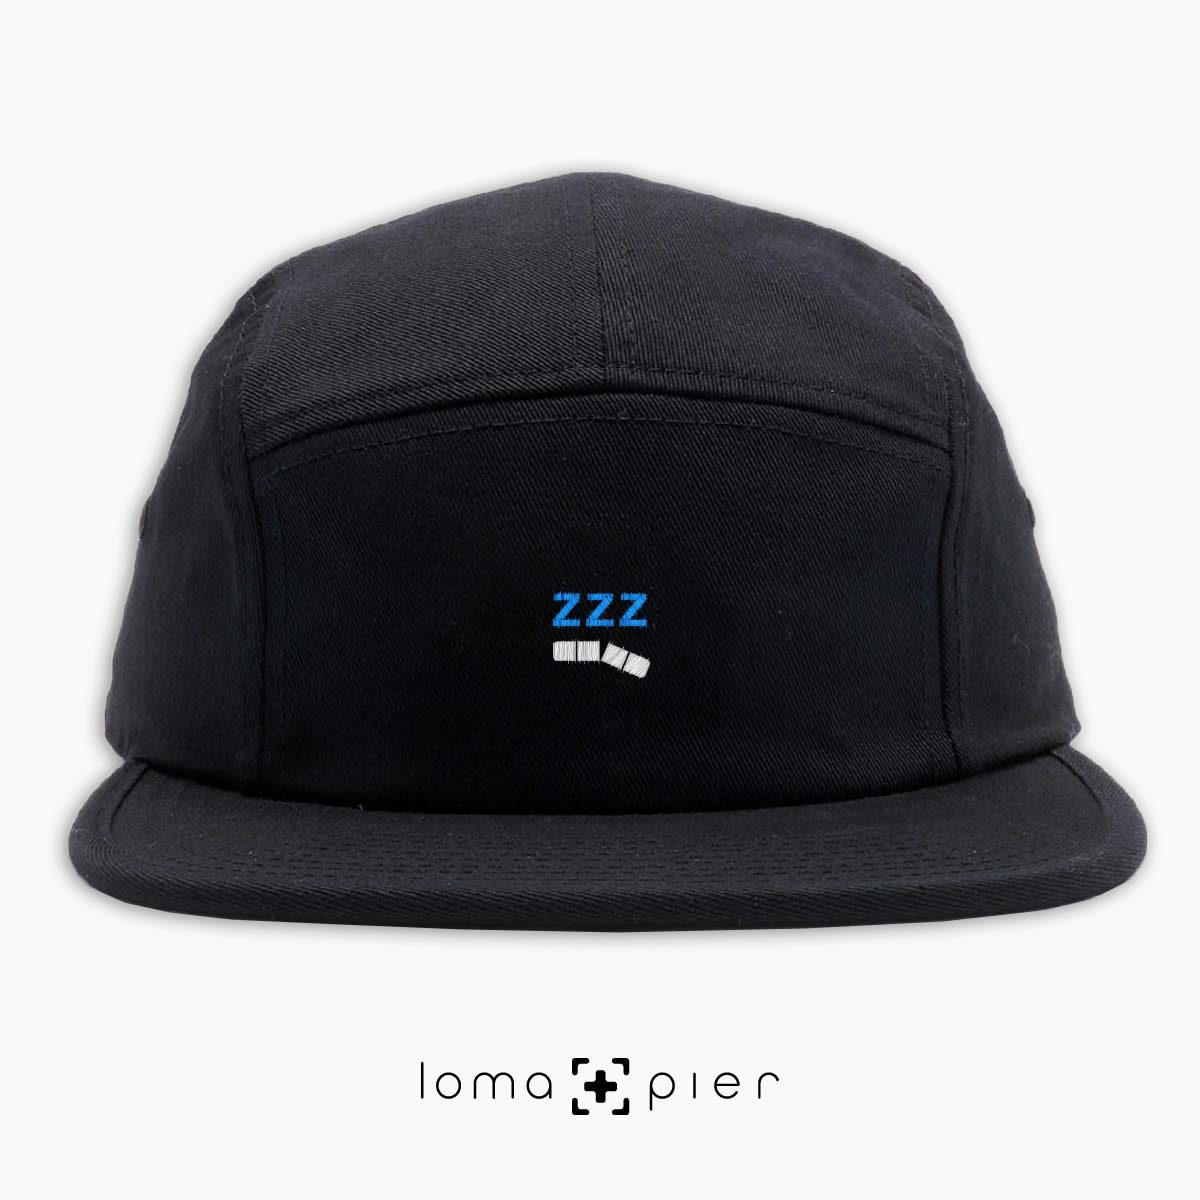 ZZZ-ANNY icon embroidered on a black cotton 5-panel hat with white and sky blue thread by loma+pier hat store